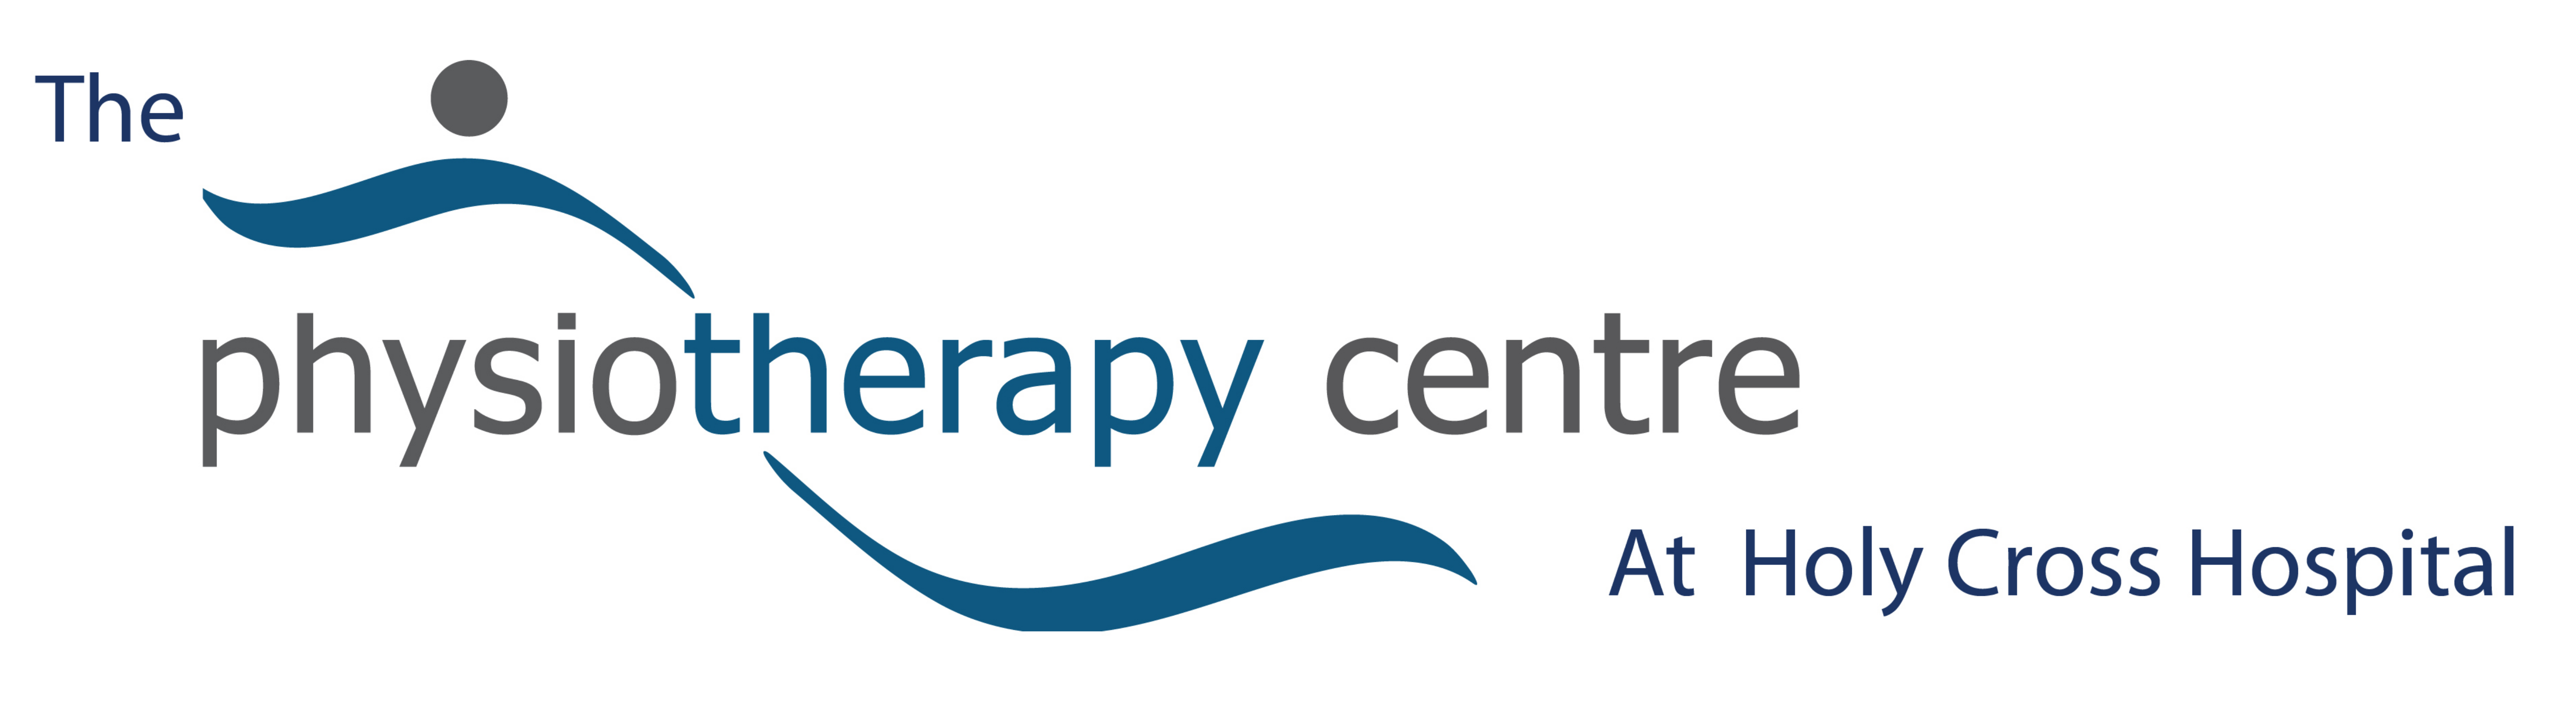 Physiotherapy Centre logo